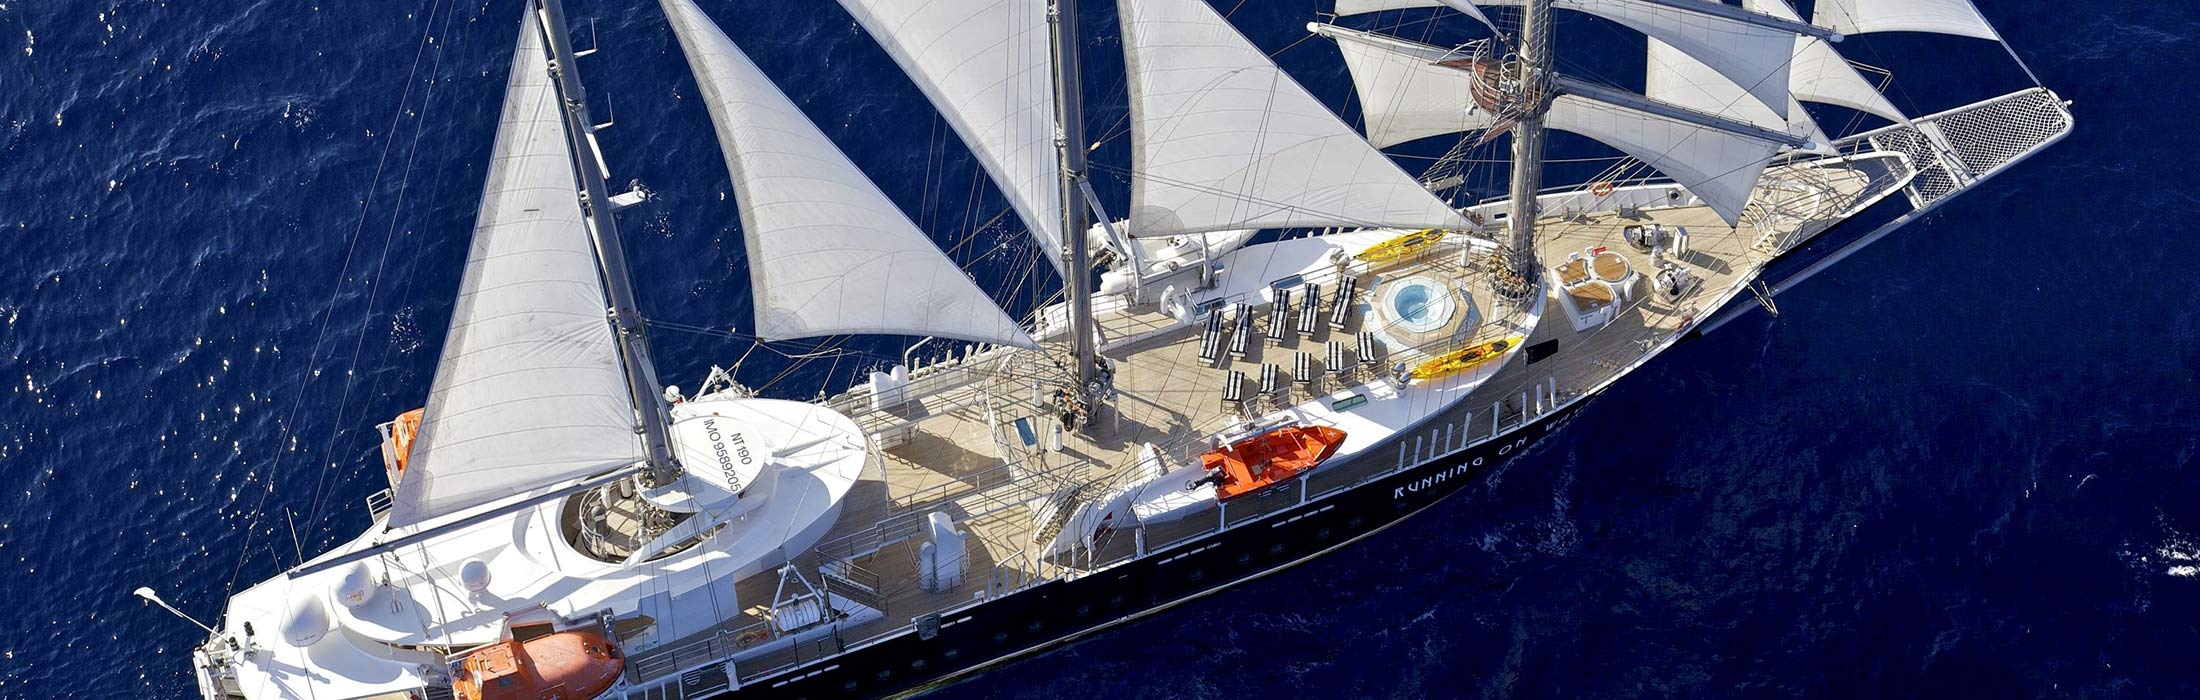 luxury yacht charter destinations mediterranean greece mykonos main slider 1 5